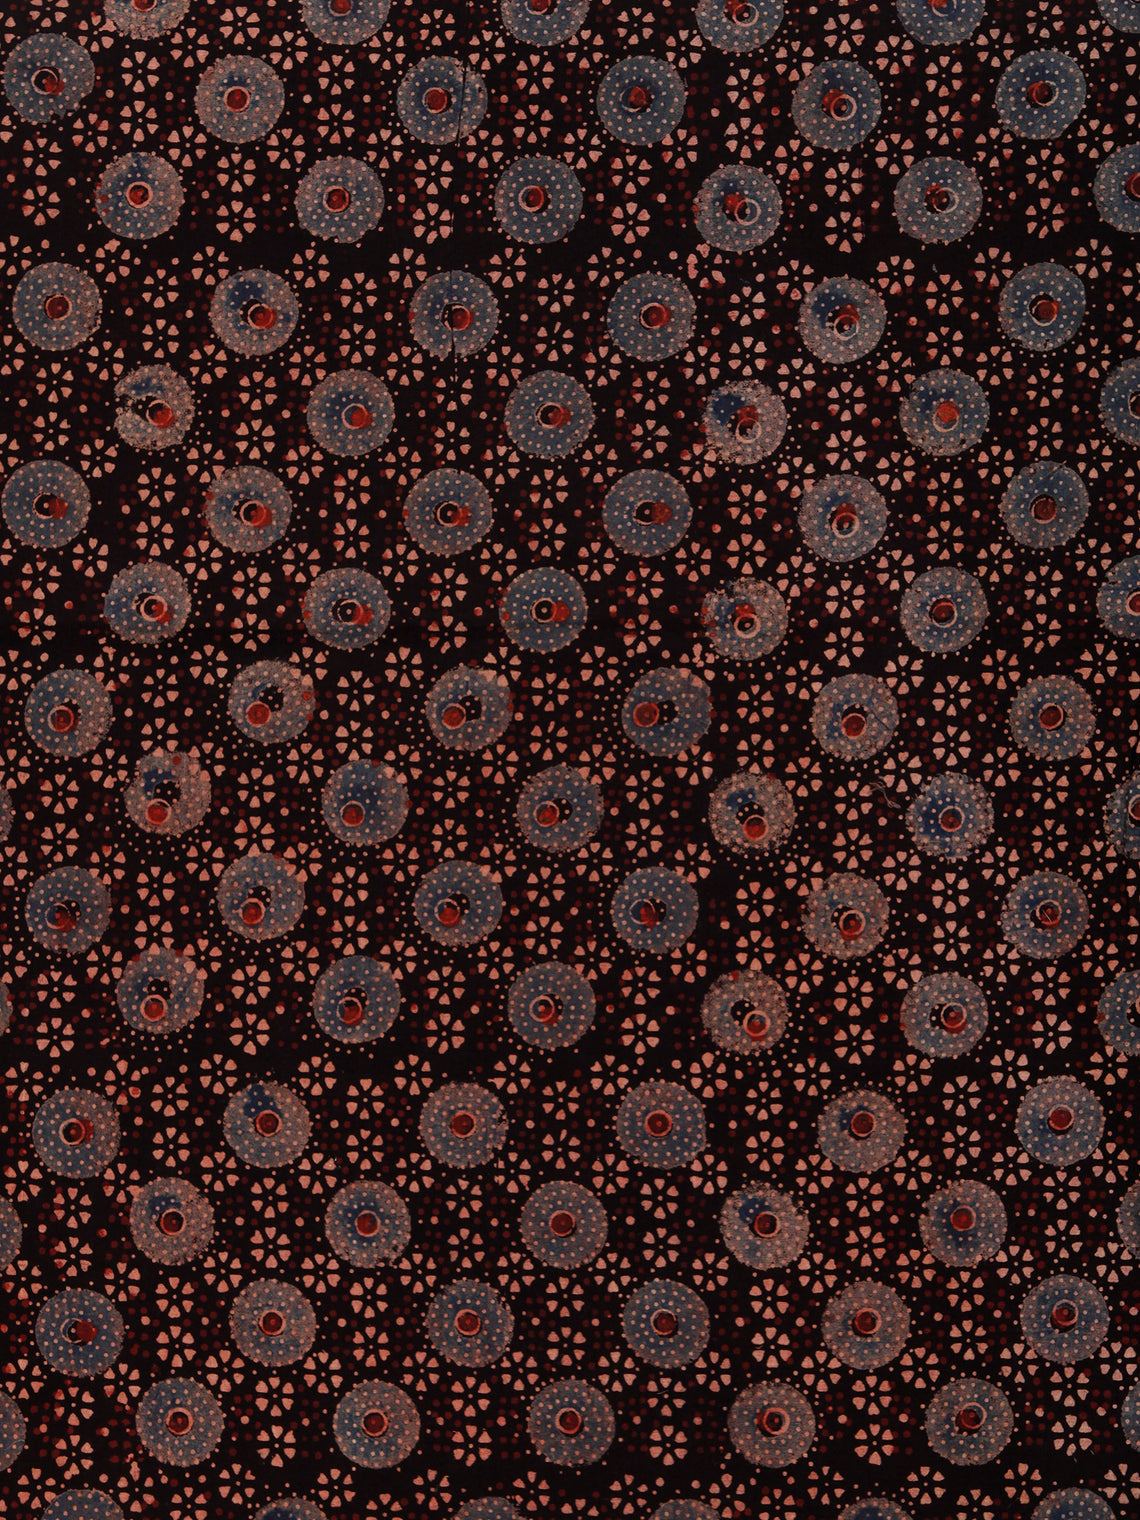 Black Indigo Beige Rust Ajrakh Hand Block Printed Cotton Fabric Per Meter - F003F1789